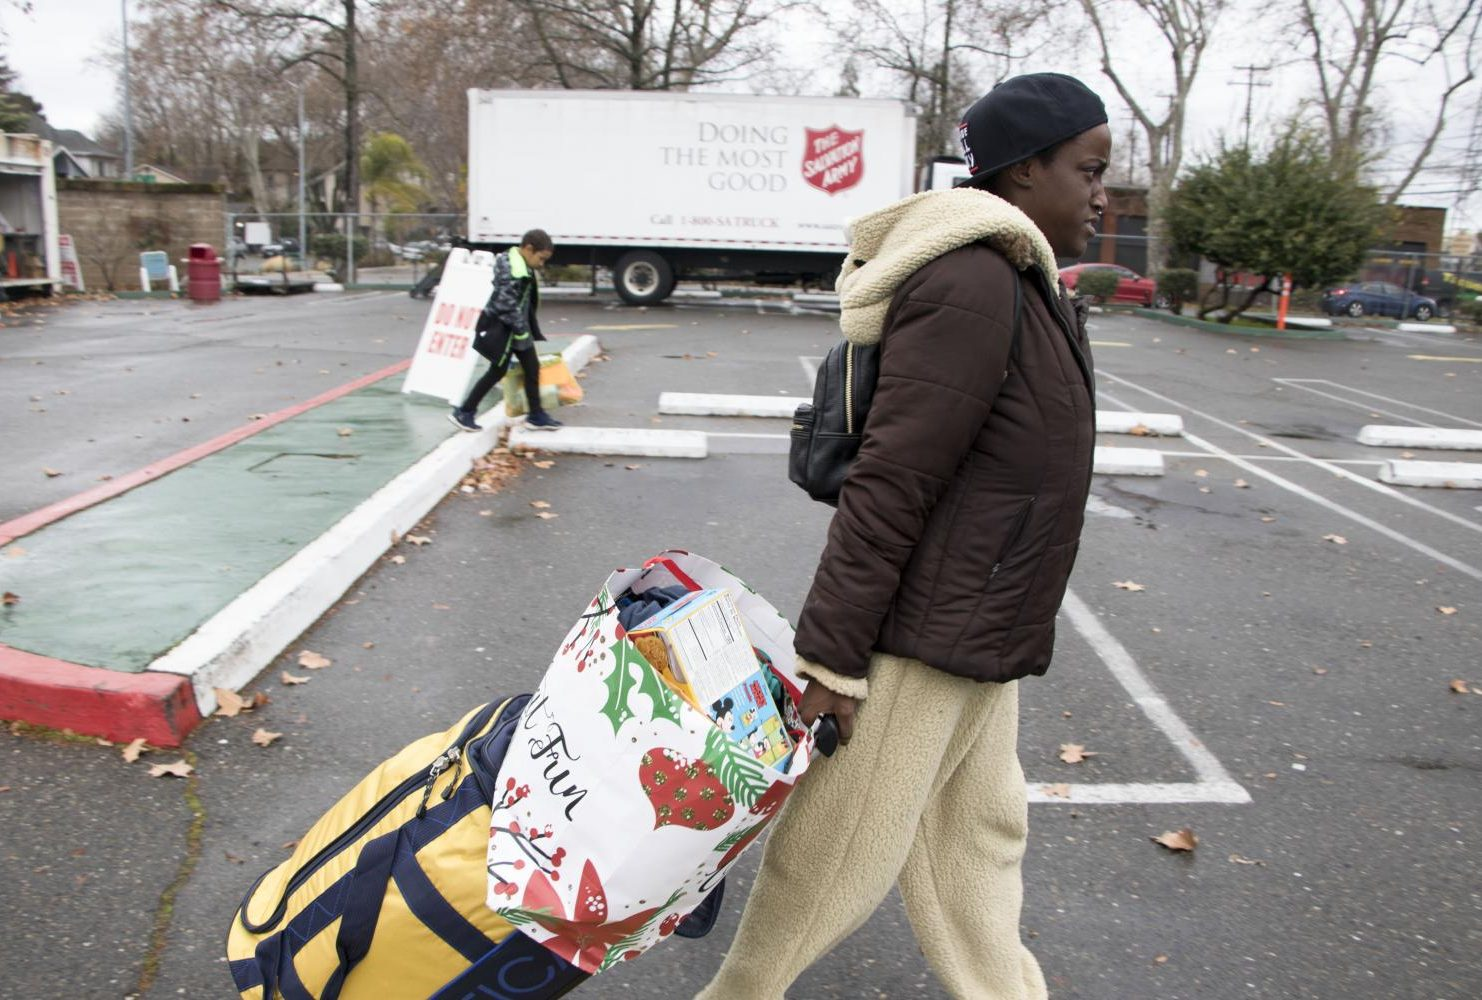 Duren-Hill and her son make their way to The Salvation Army to get a new suitcase and some clothes for themselves in Sacramento, California, on Jan. 5, 2019. (Photo by Ashley Hayes-Stone)